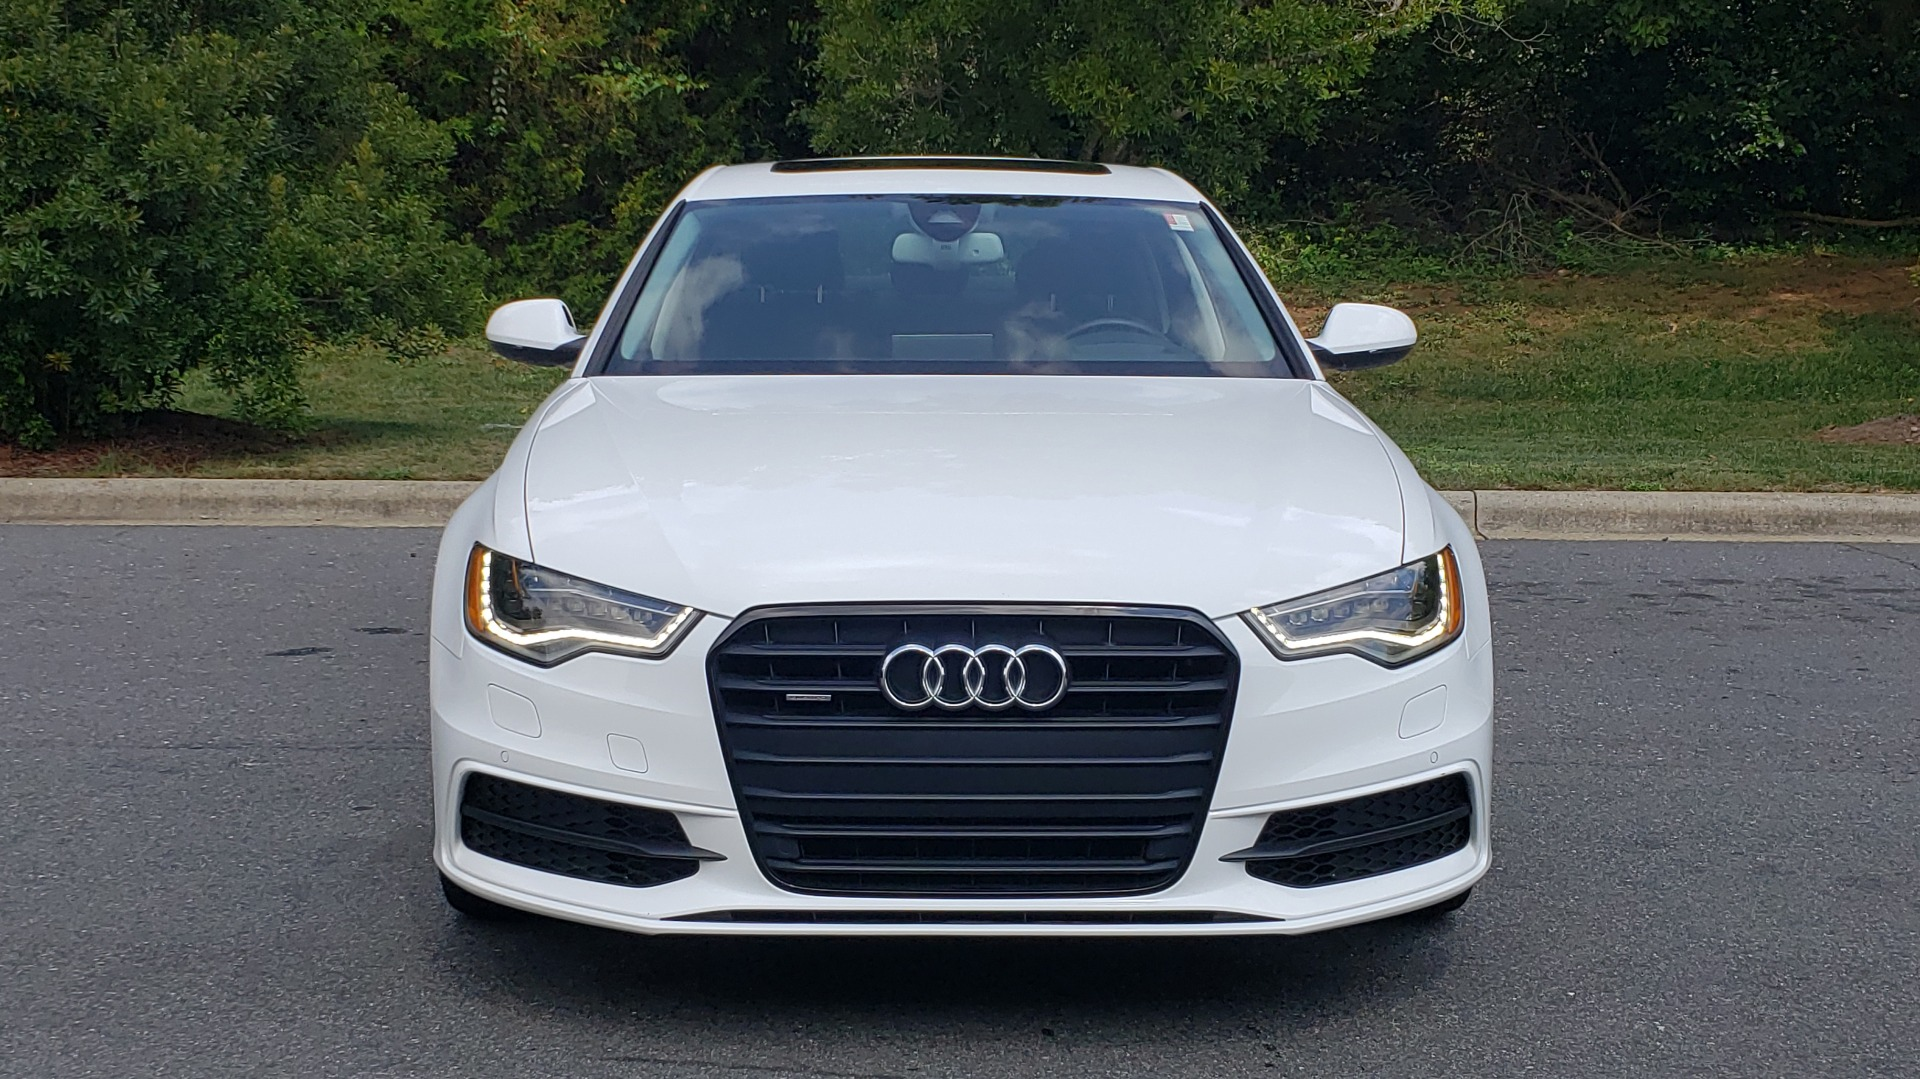 Used 2015 Audi A6 3.0T PRESTIGE / BLACK OPTIC / NAV / BOSE / SUNROOF / REARVIEW for sale Sold at Formula Imports in Charlotte NC 28227 26